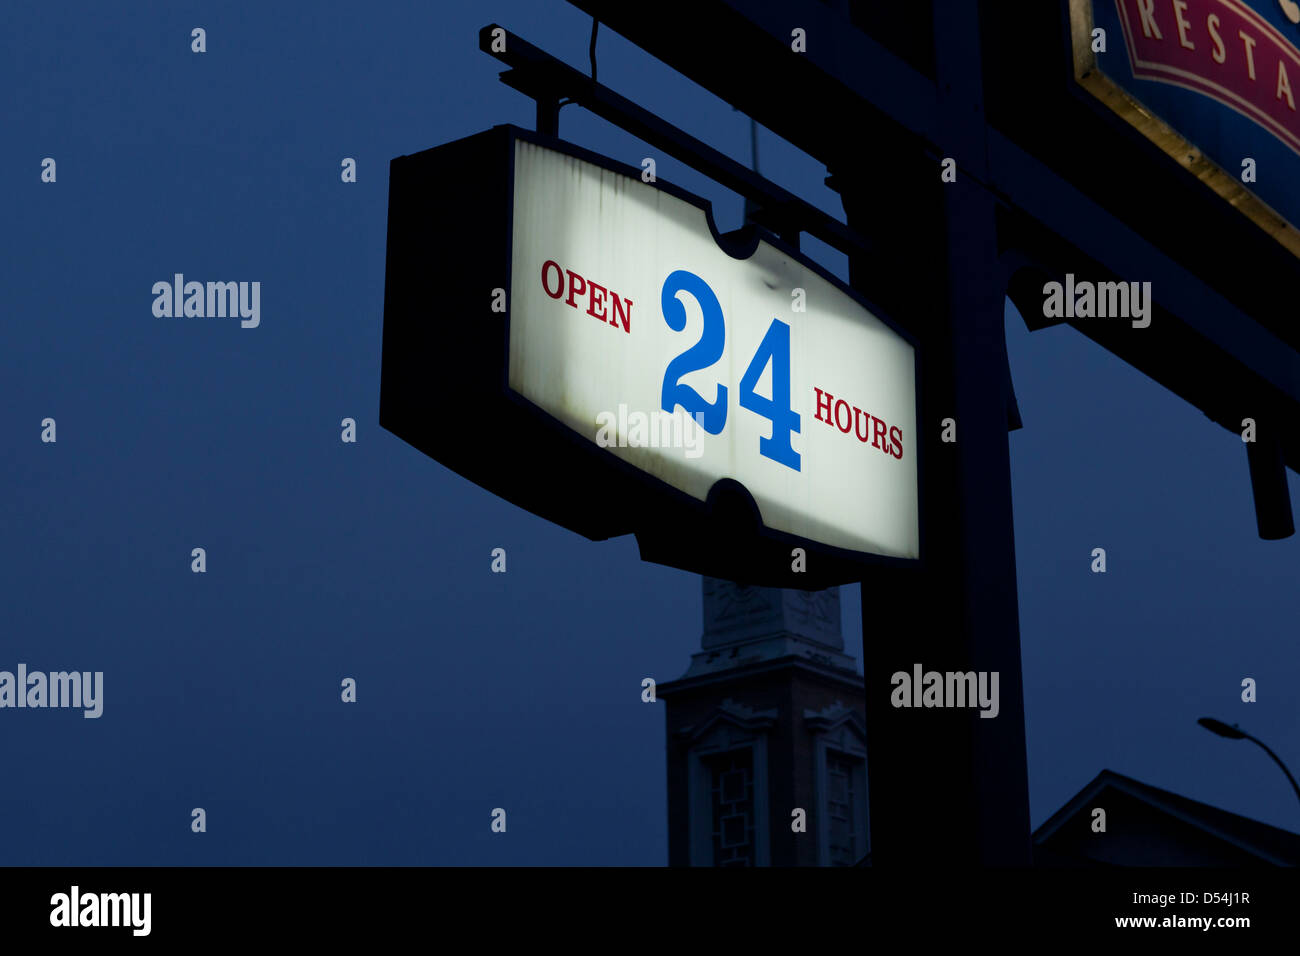 Open 24 hours sign - Stock Image